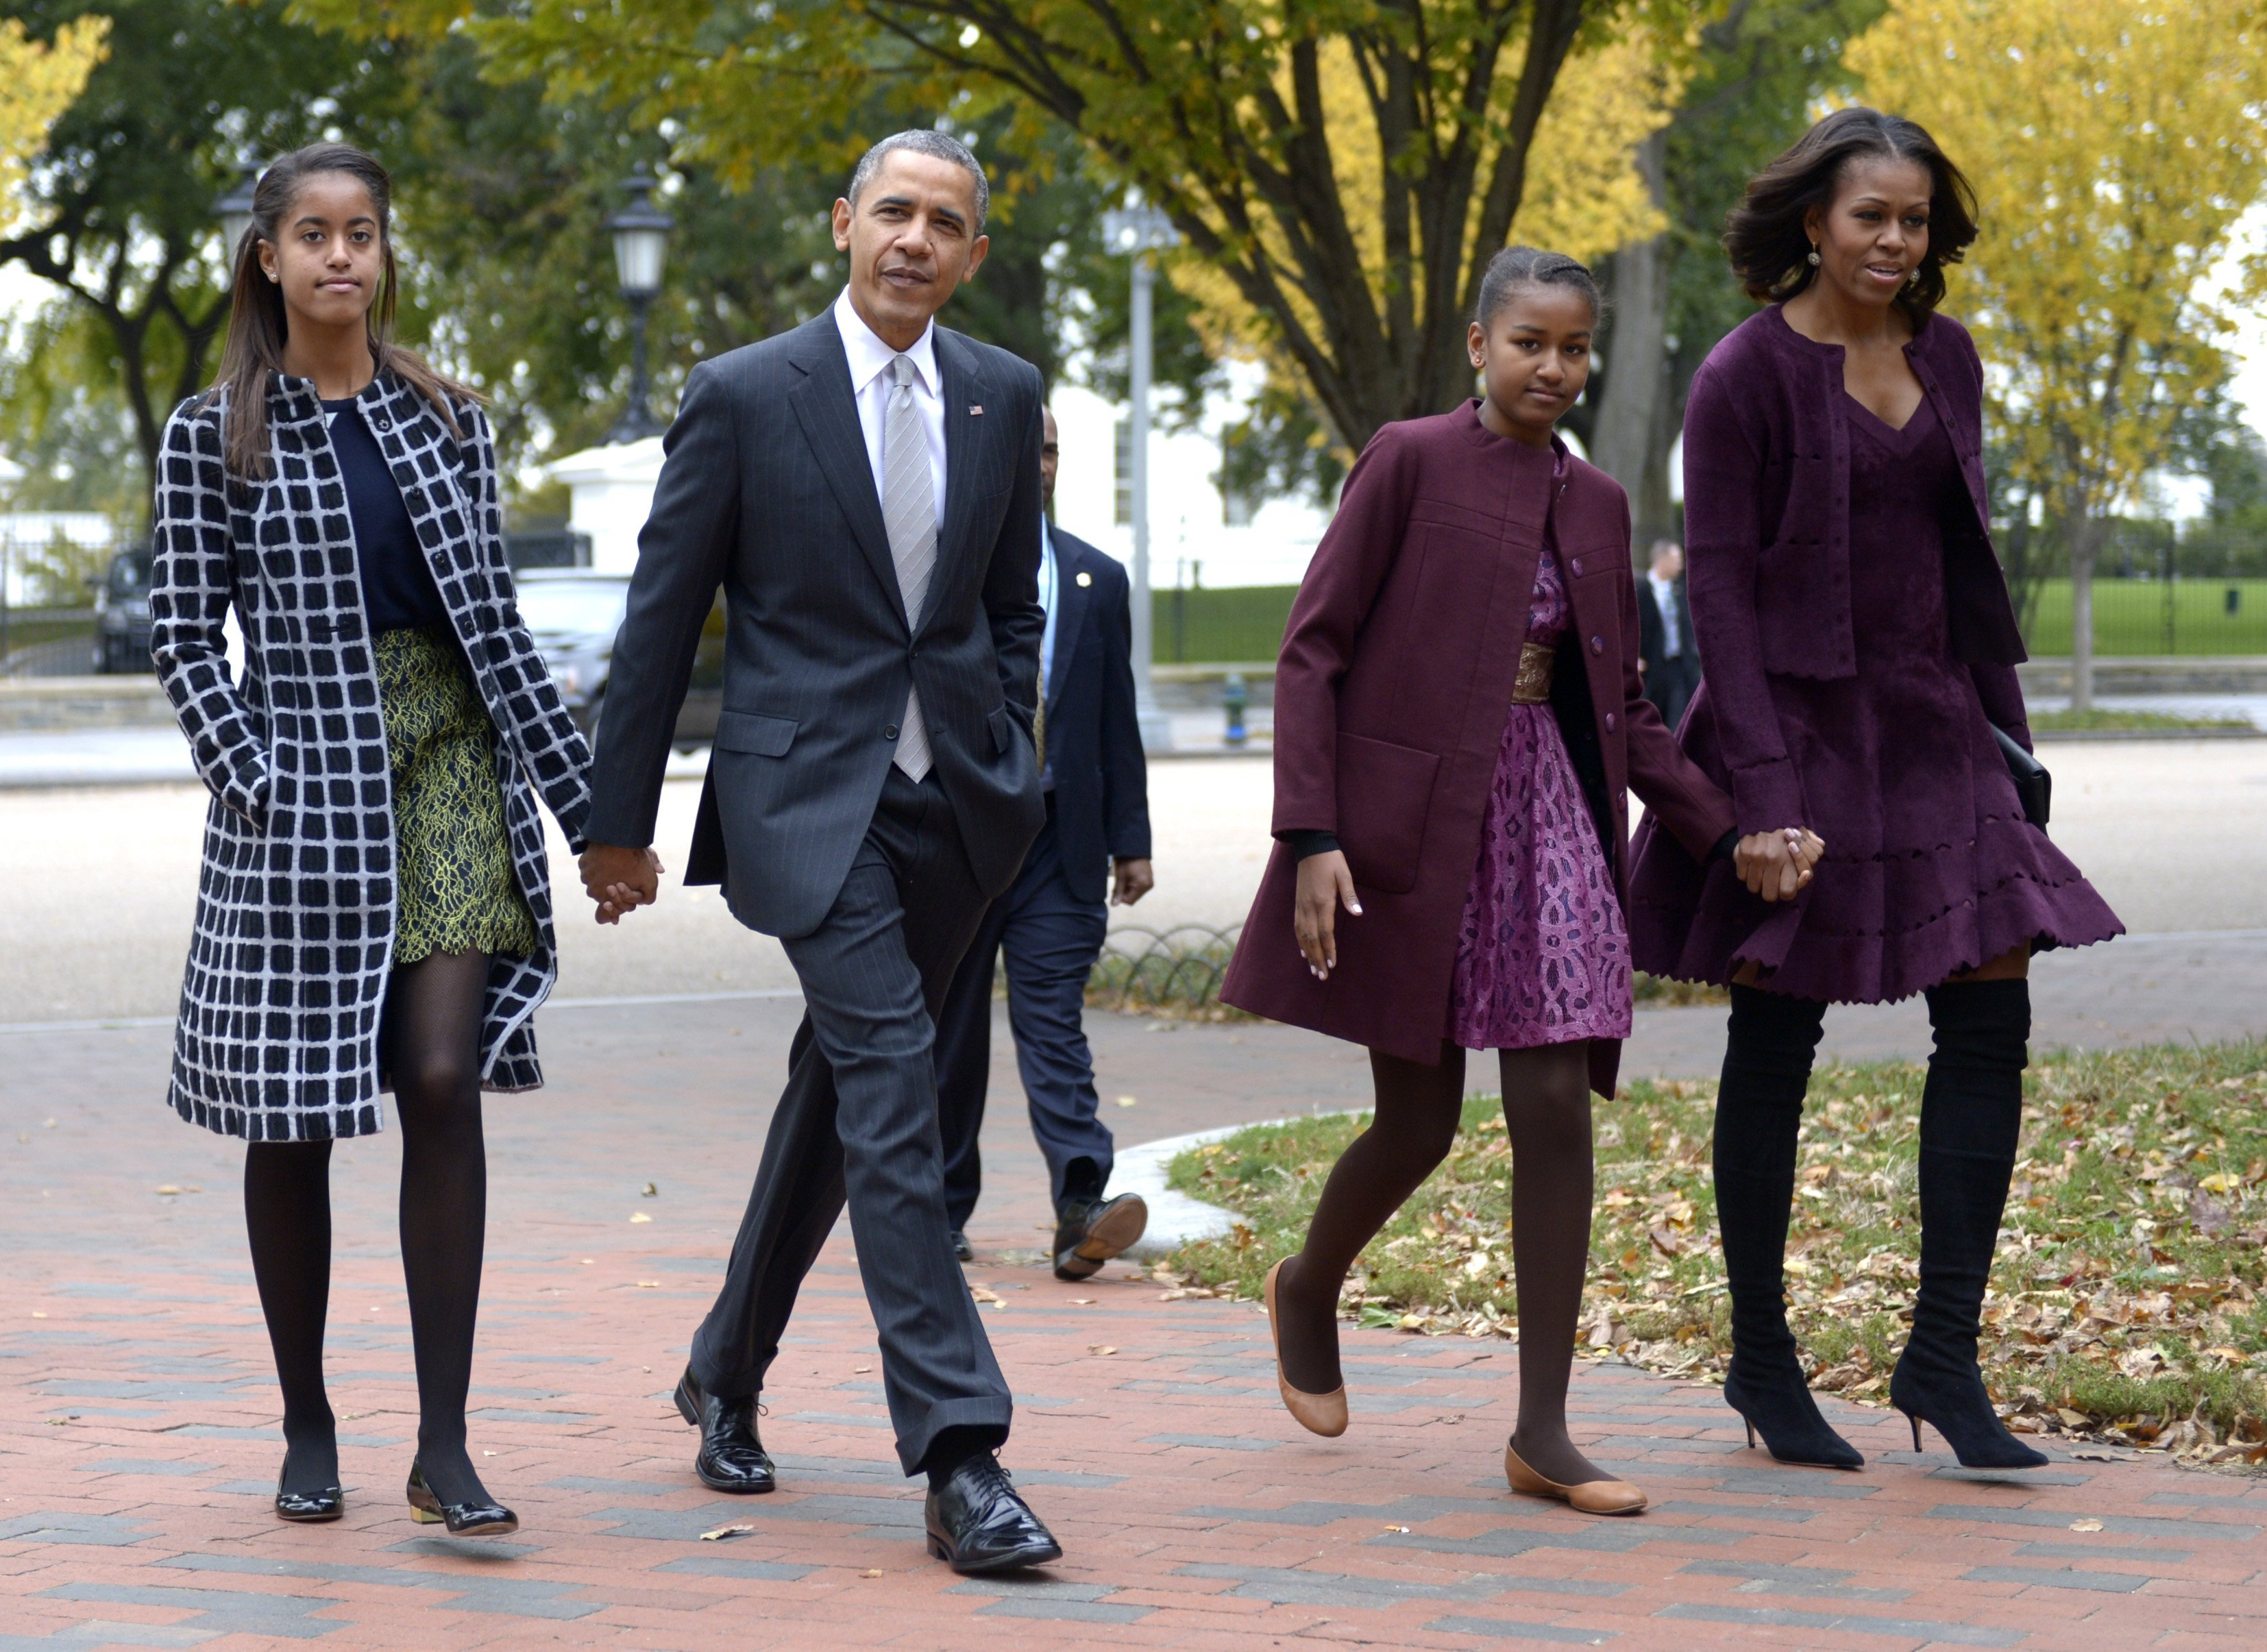 Barack Obama walks with his wife Michelle and two daughters Malia and Sasha to attend service October 27, 2013 in Washington, DC. | Photo: GettyImages